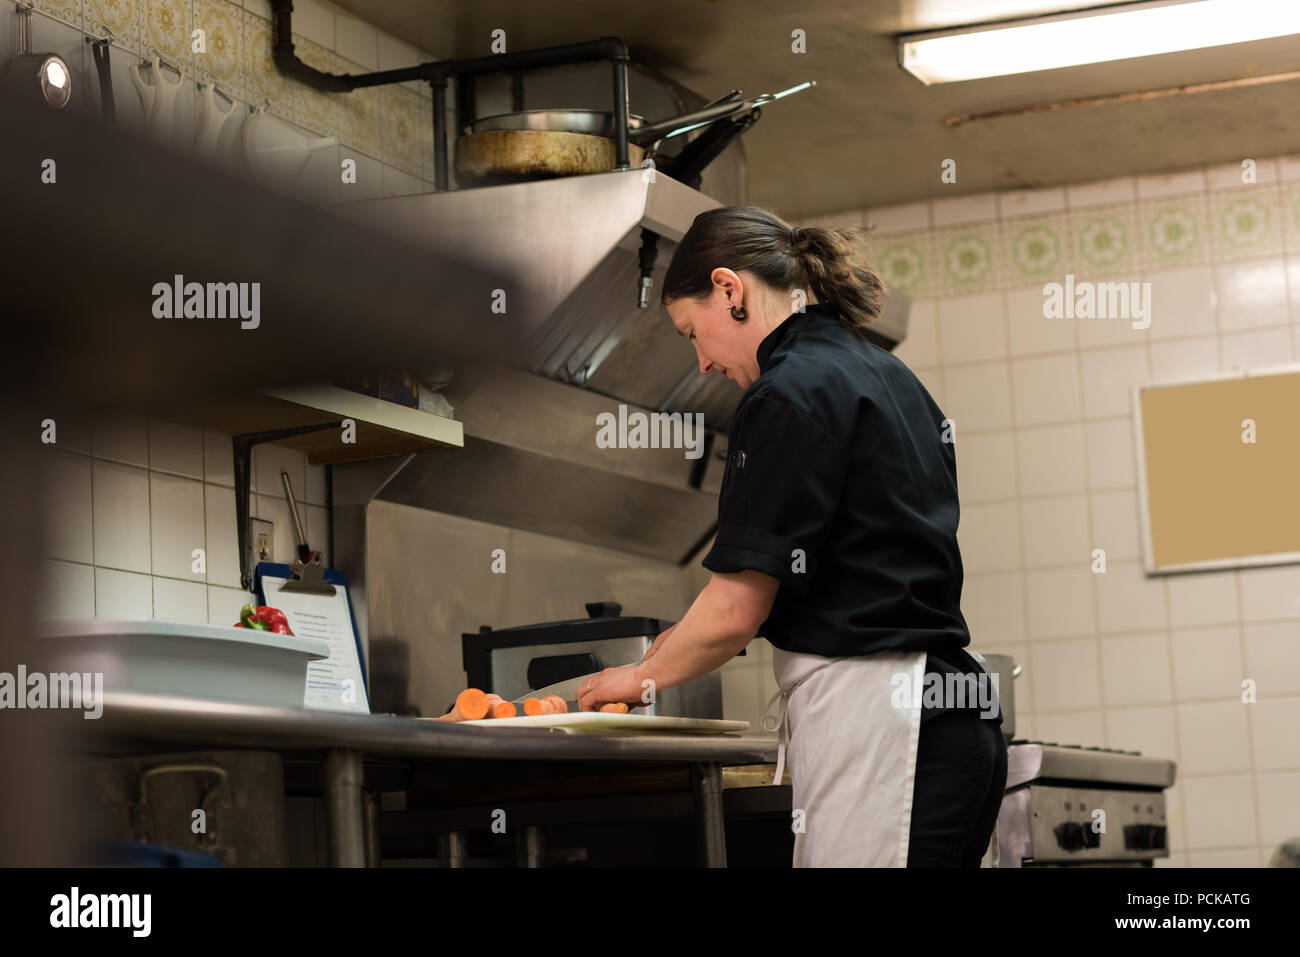 Chef chopping vegetables in the commercial kitchen - Stock Image